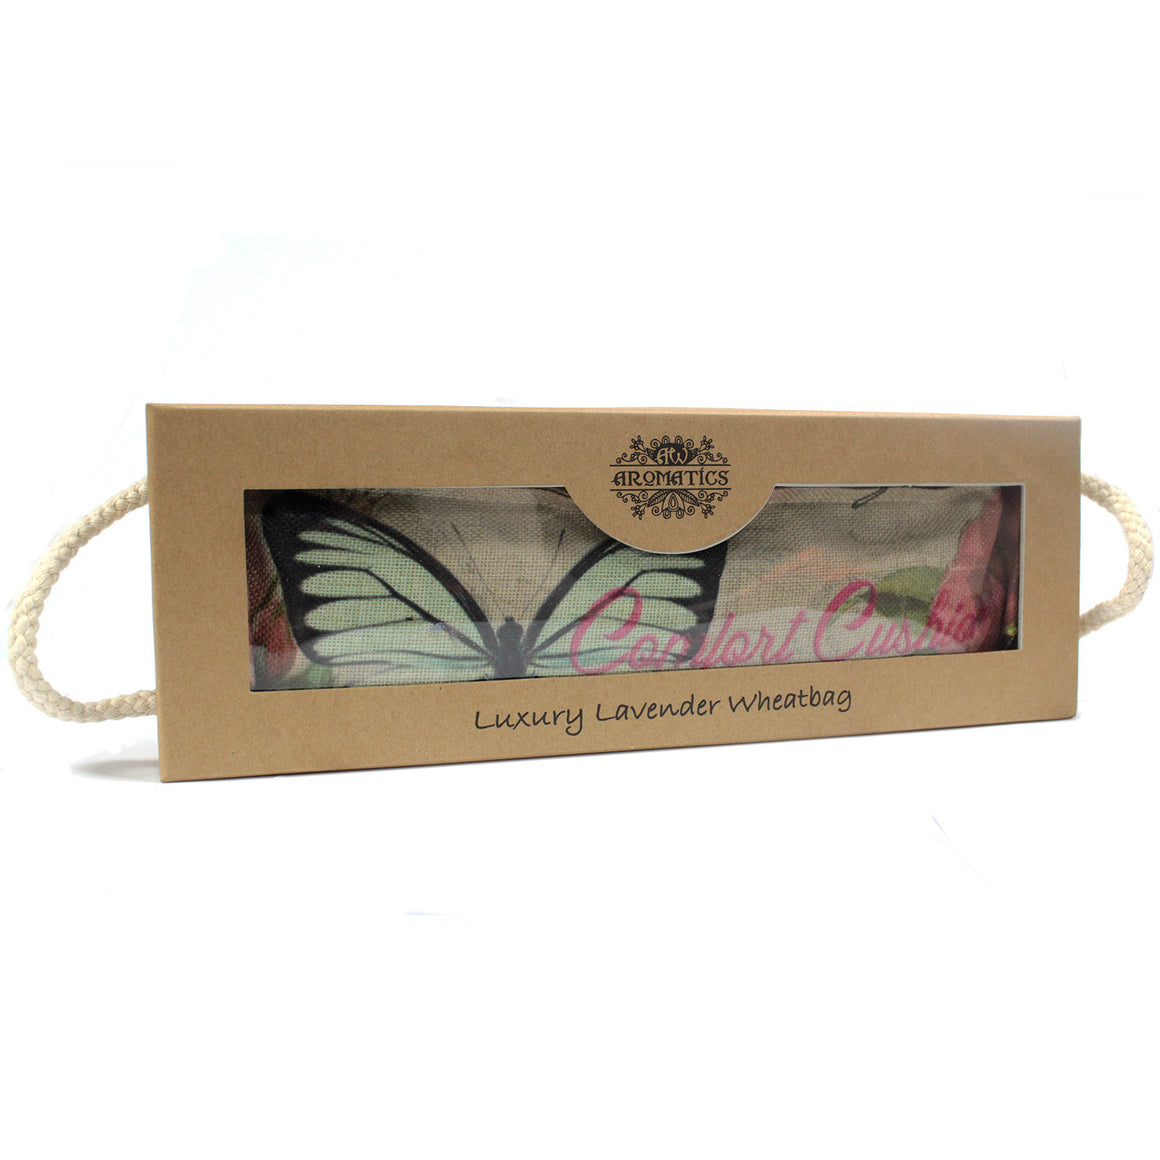 Luxury Lavender Wheat Bag in Gift Box - Blue Sky RELAX